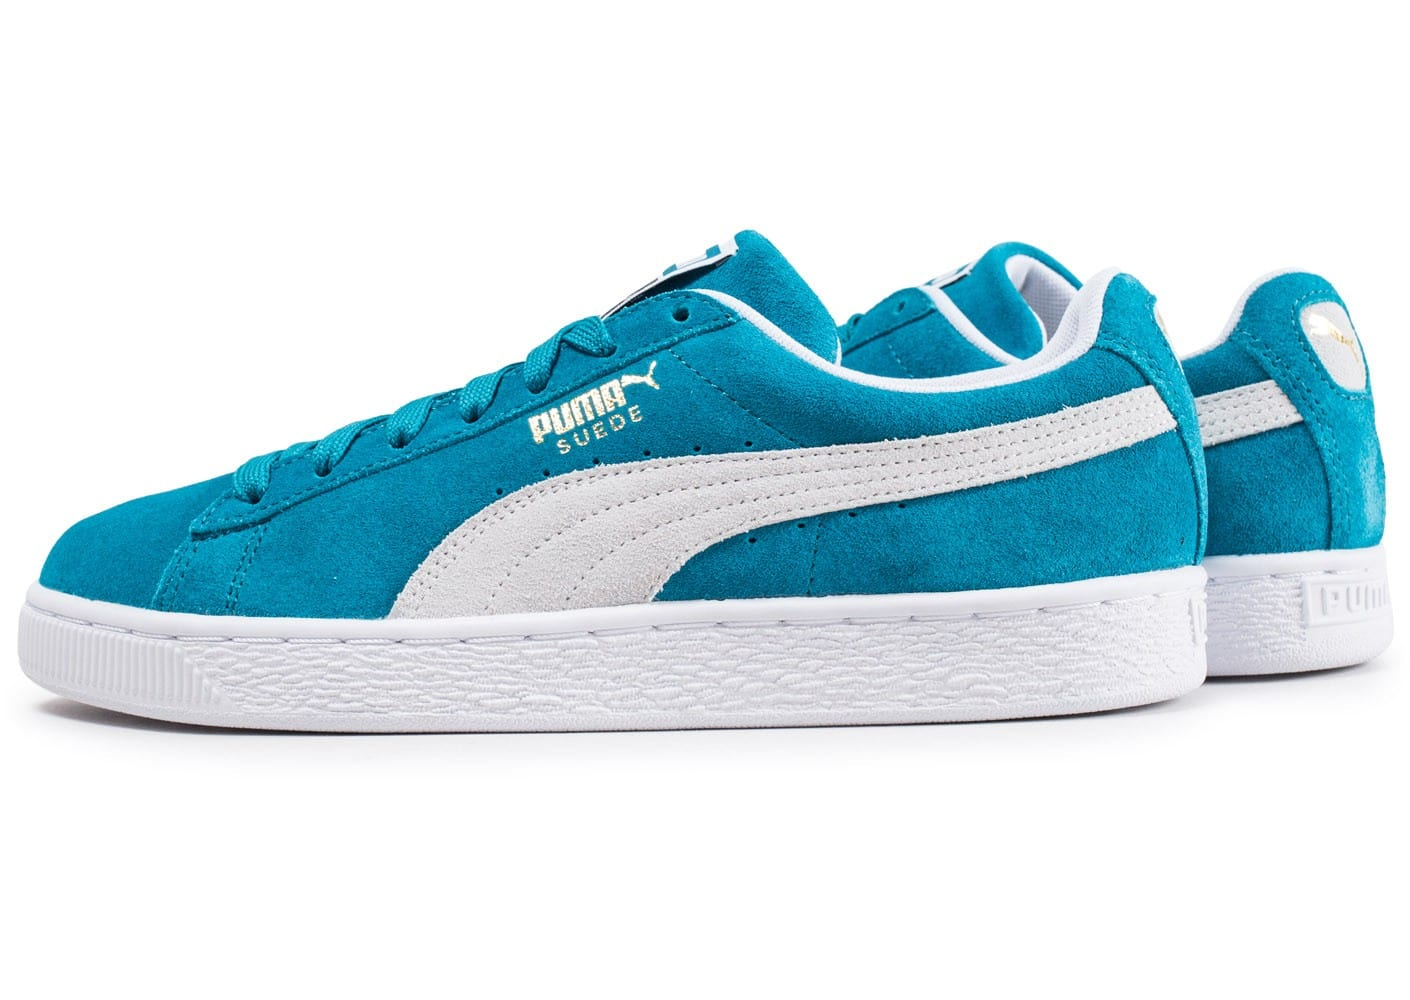 Puma Suede Classic bleu turquoise Chaussures Baskets homme